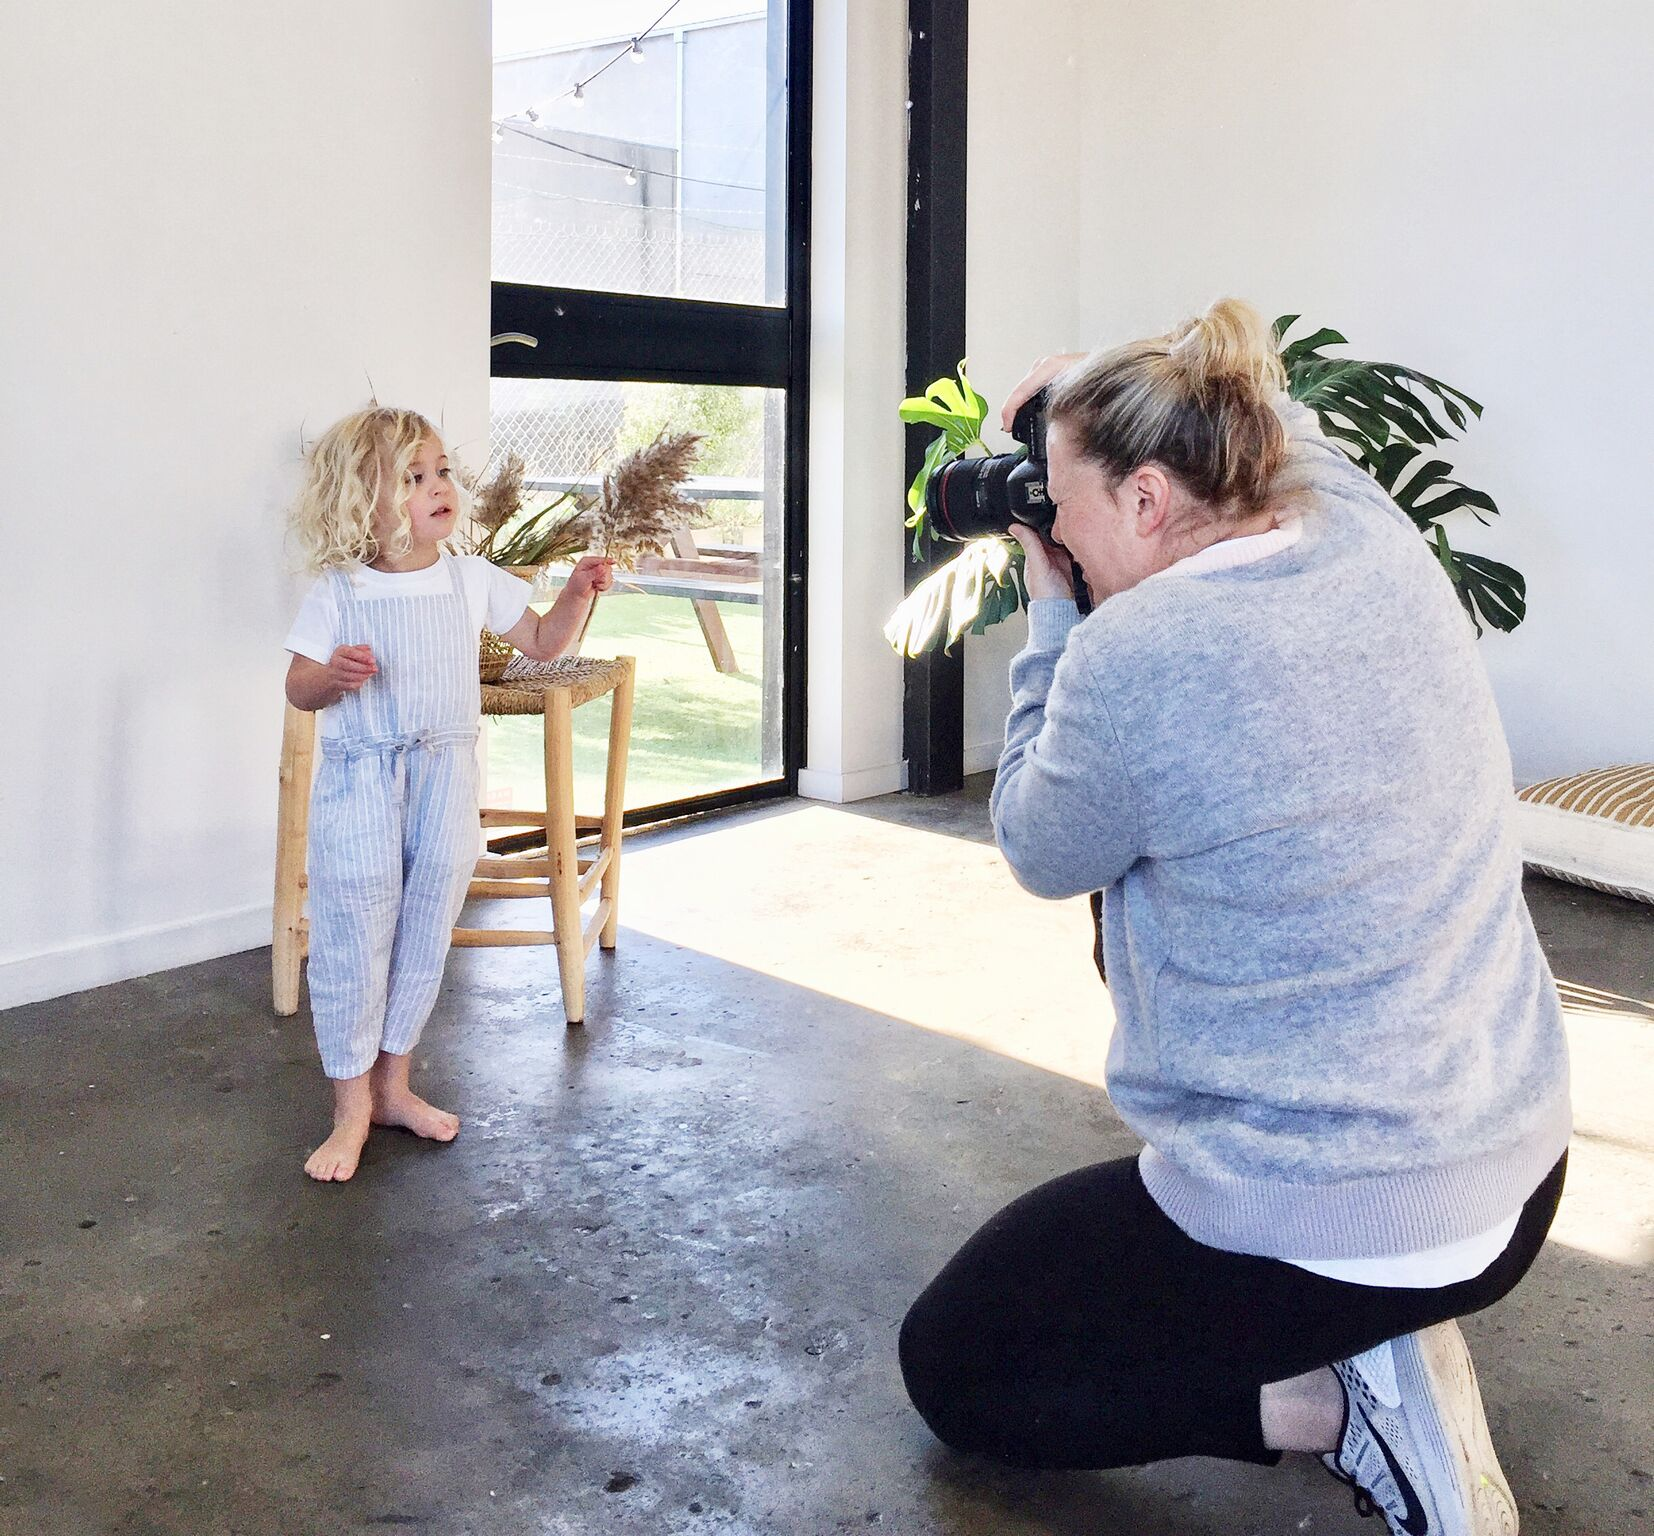 photoshoot-booking-the-nook-creative-space-hire-mornington-1000px-0024.jpg